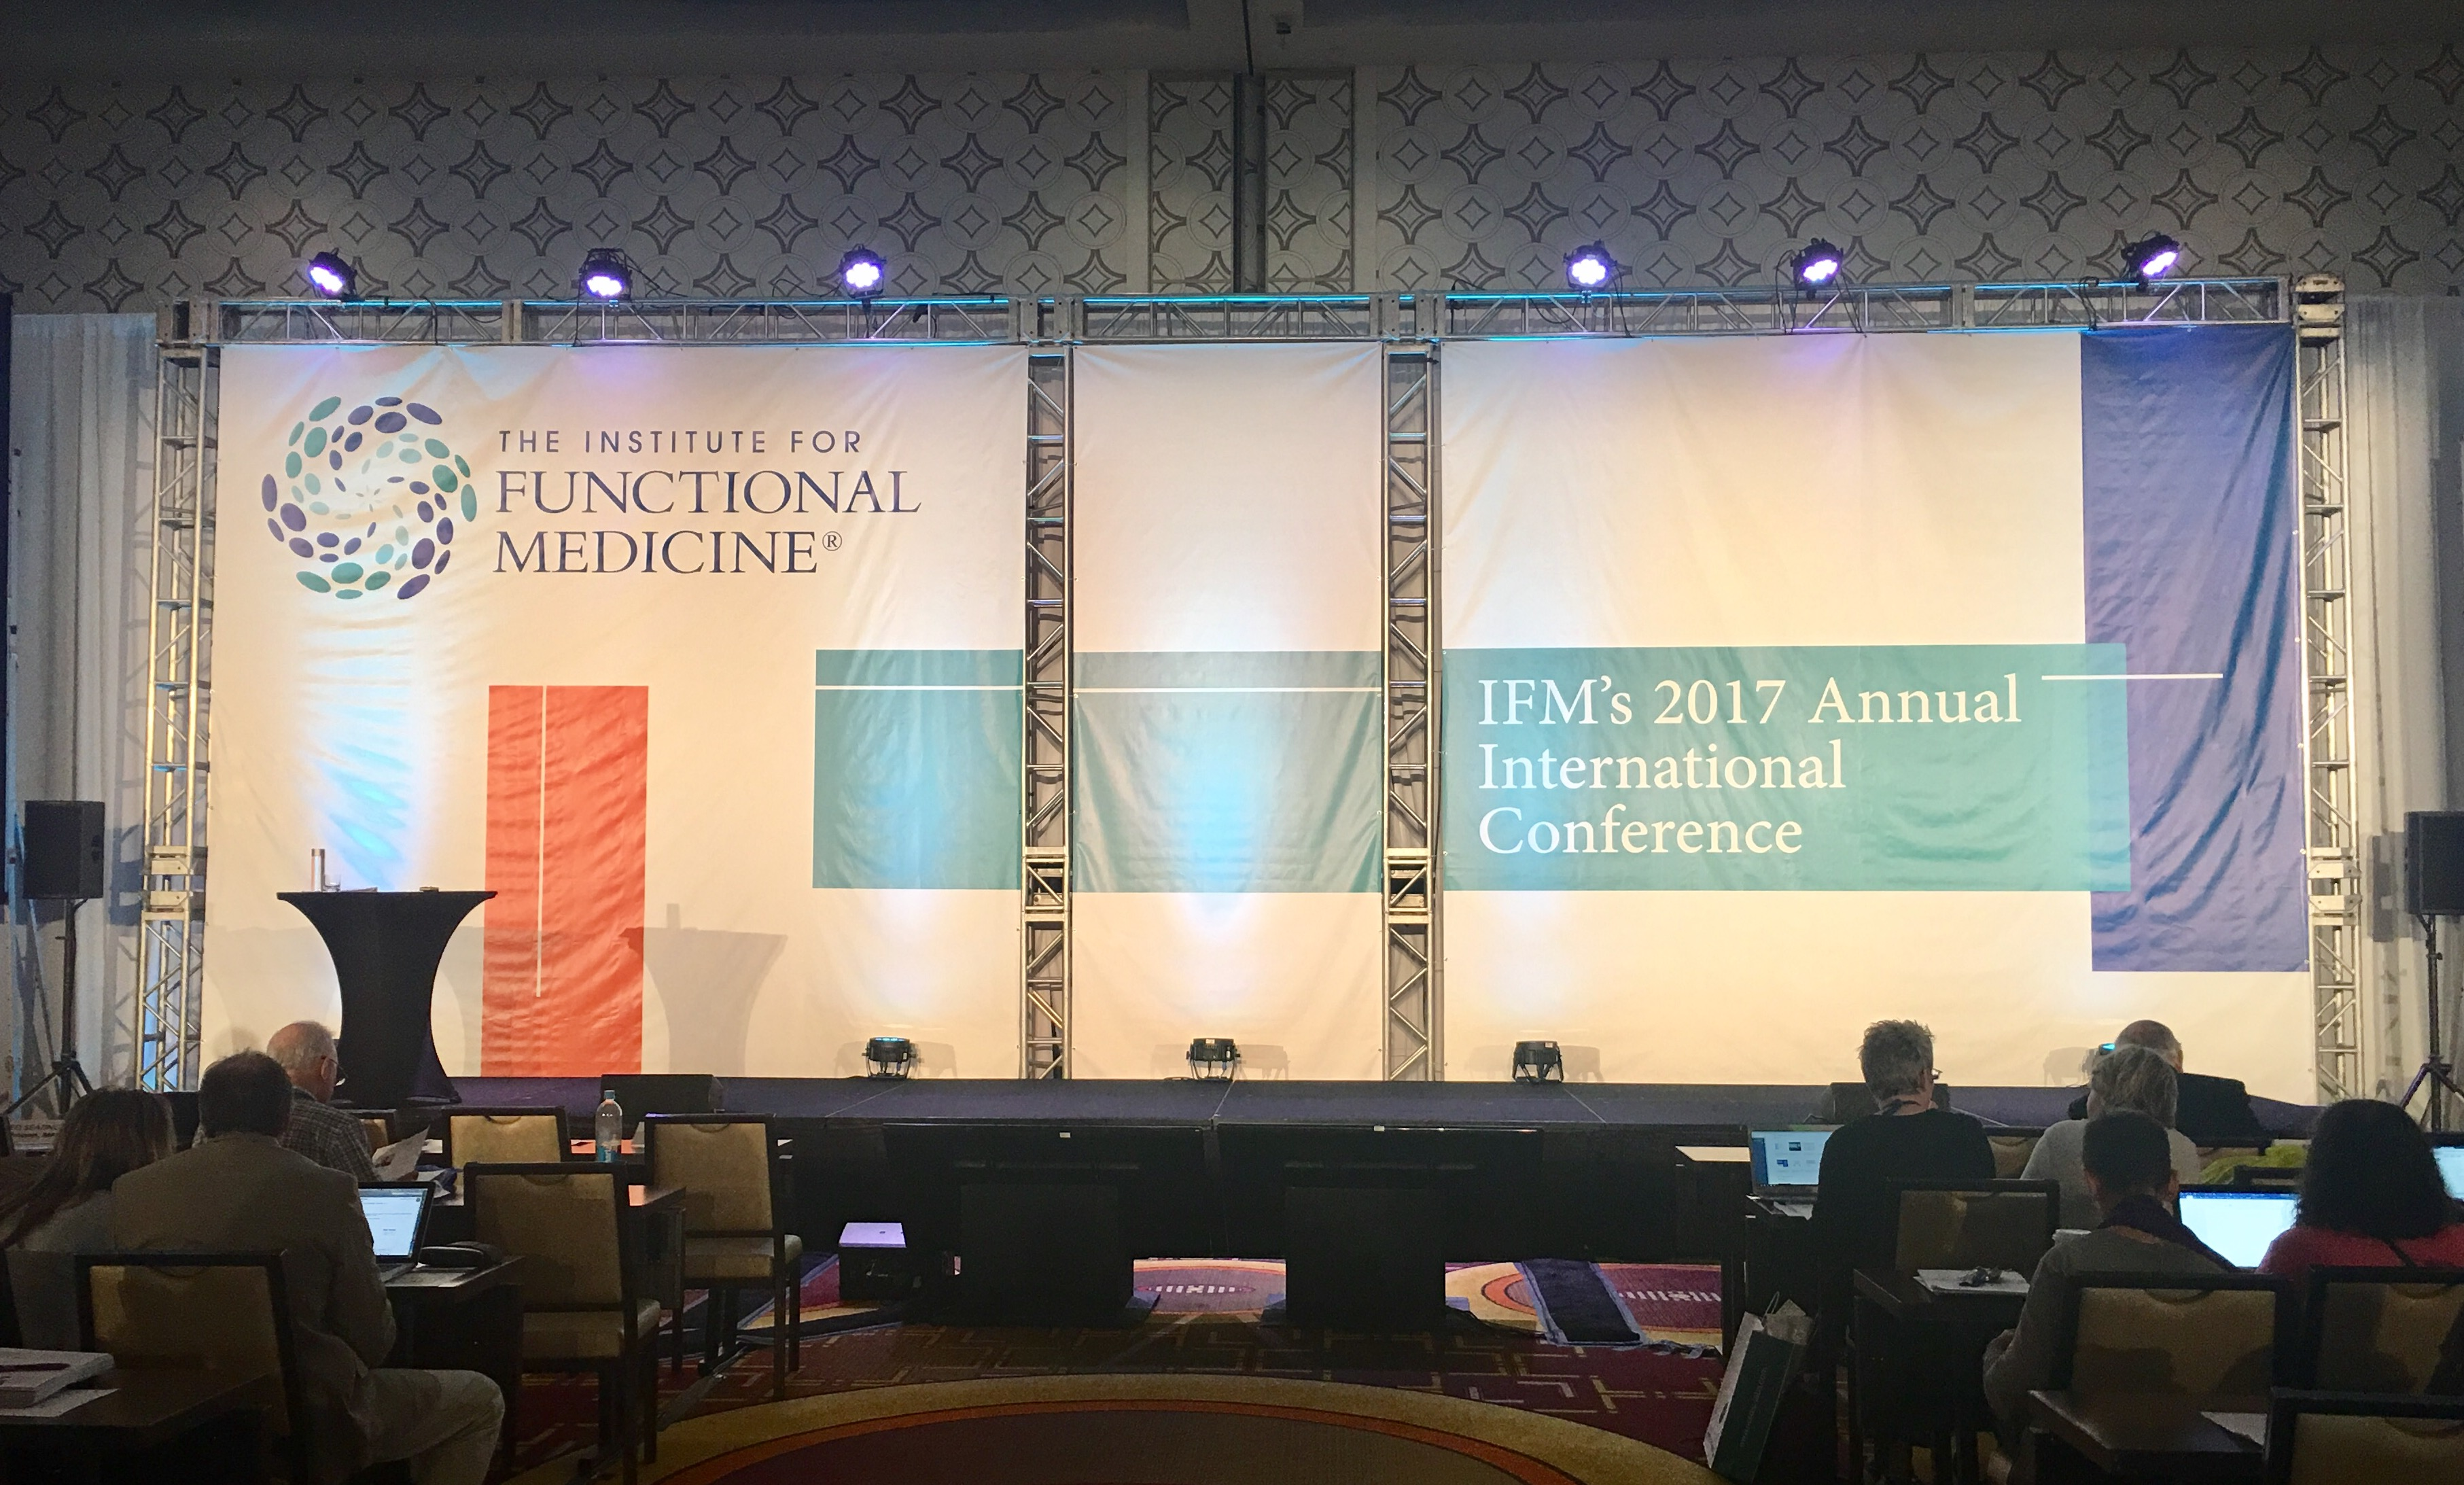 Your guide to the Institute for Functional Medicine's Annual Conference